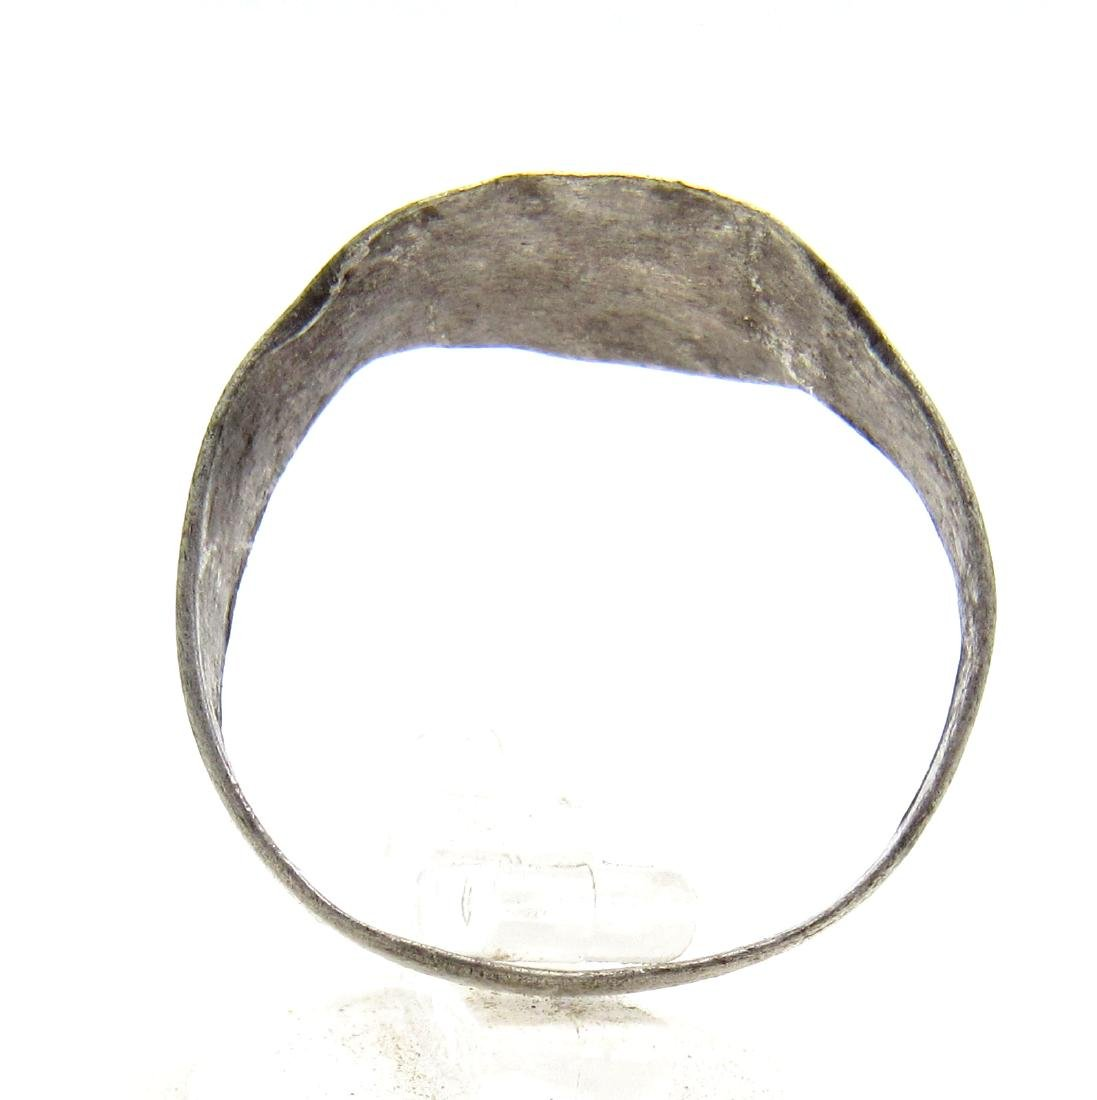 Medieval Viking Era Silver Ring with Runic Symbols - 3